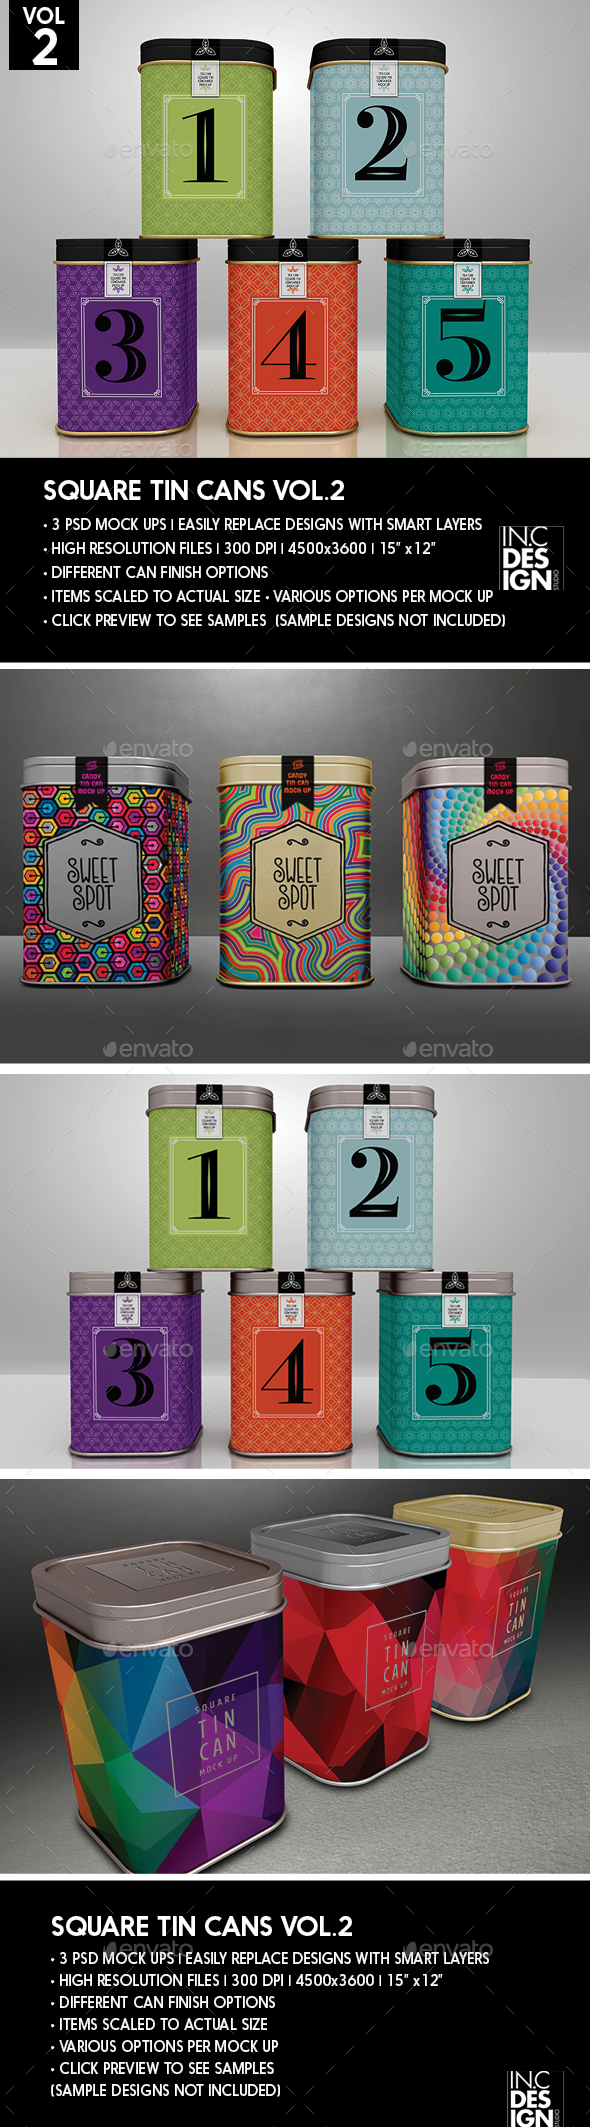 Square Tin Cans Packaging Mock Up  for Tea or Coffee or Storage